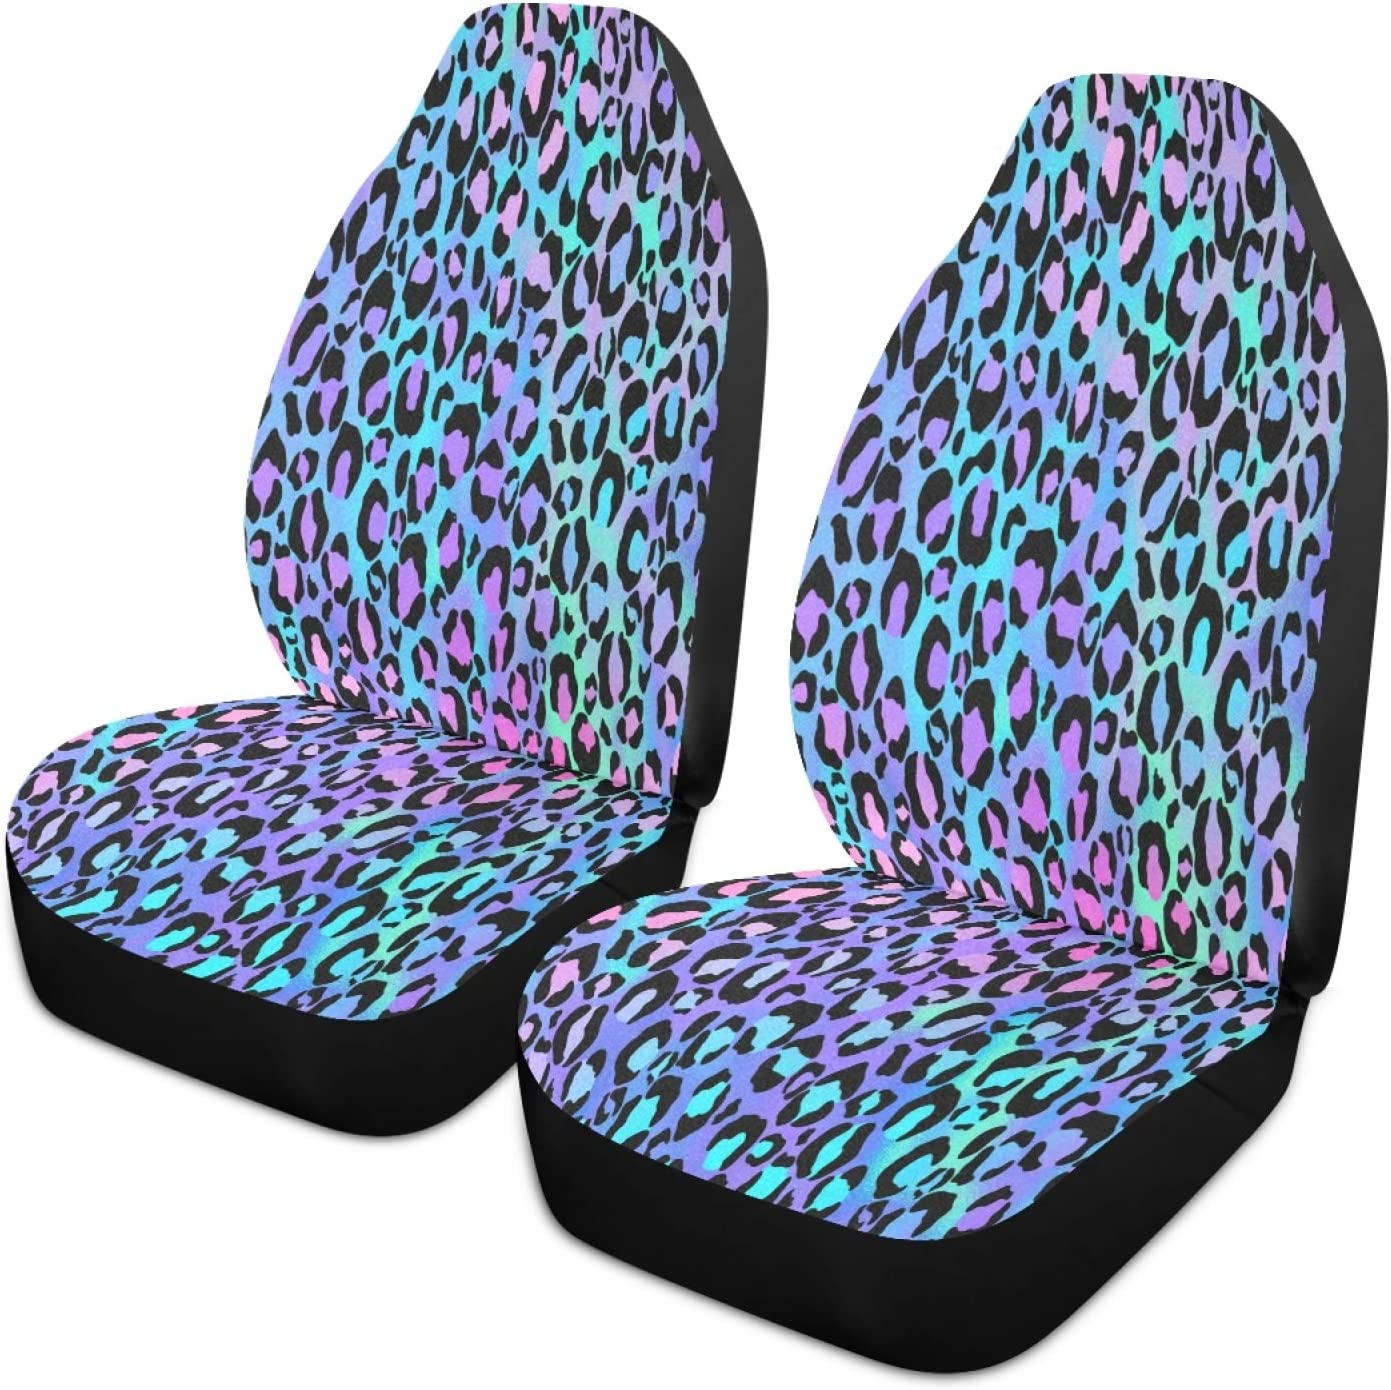 xigua 2PCS Fashion Latest item Easy-to-use Color Leopard Print Ant Front Seat Car Covers